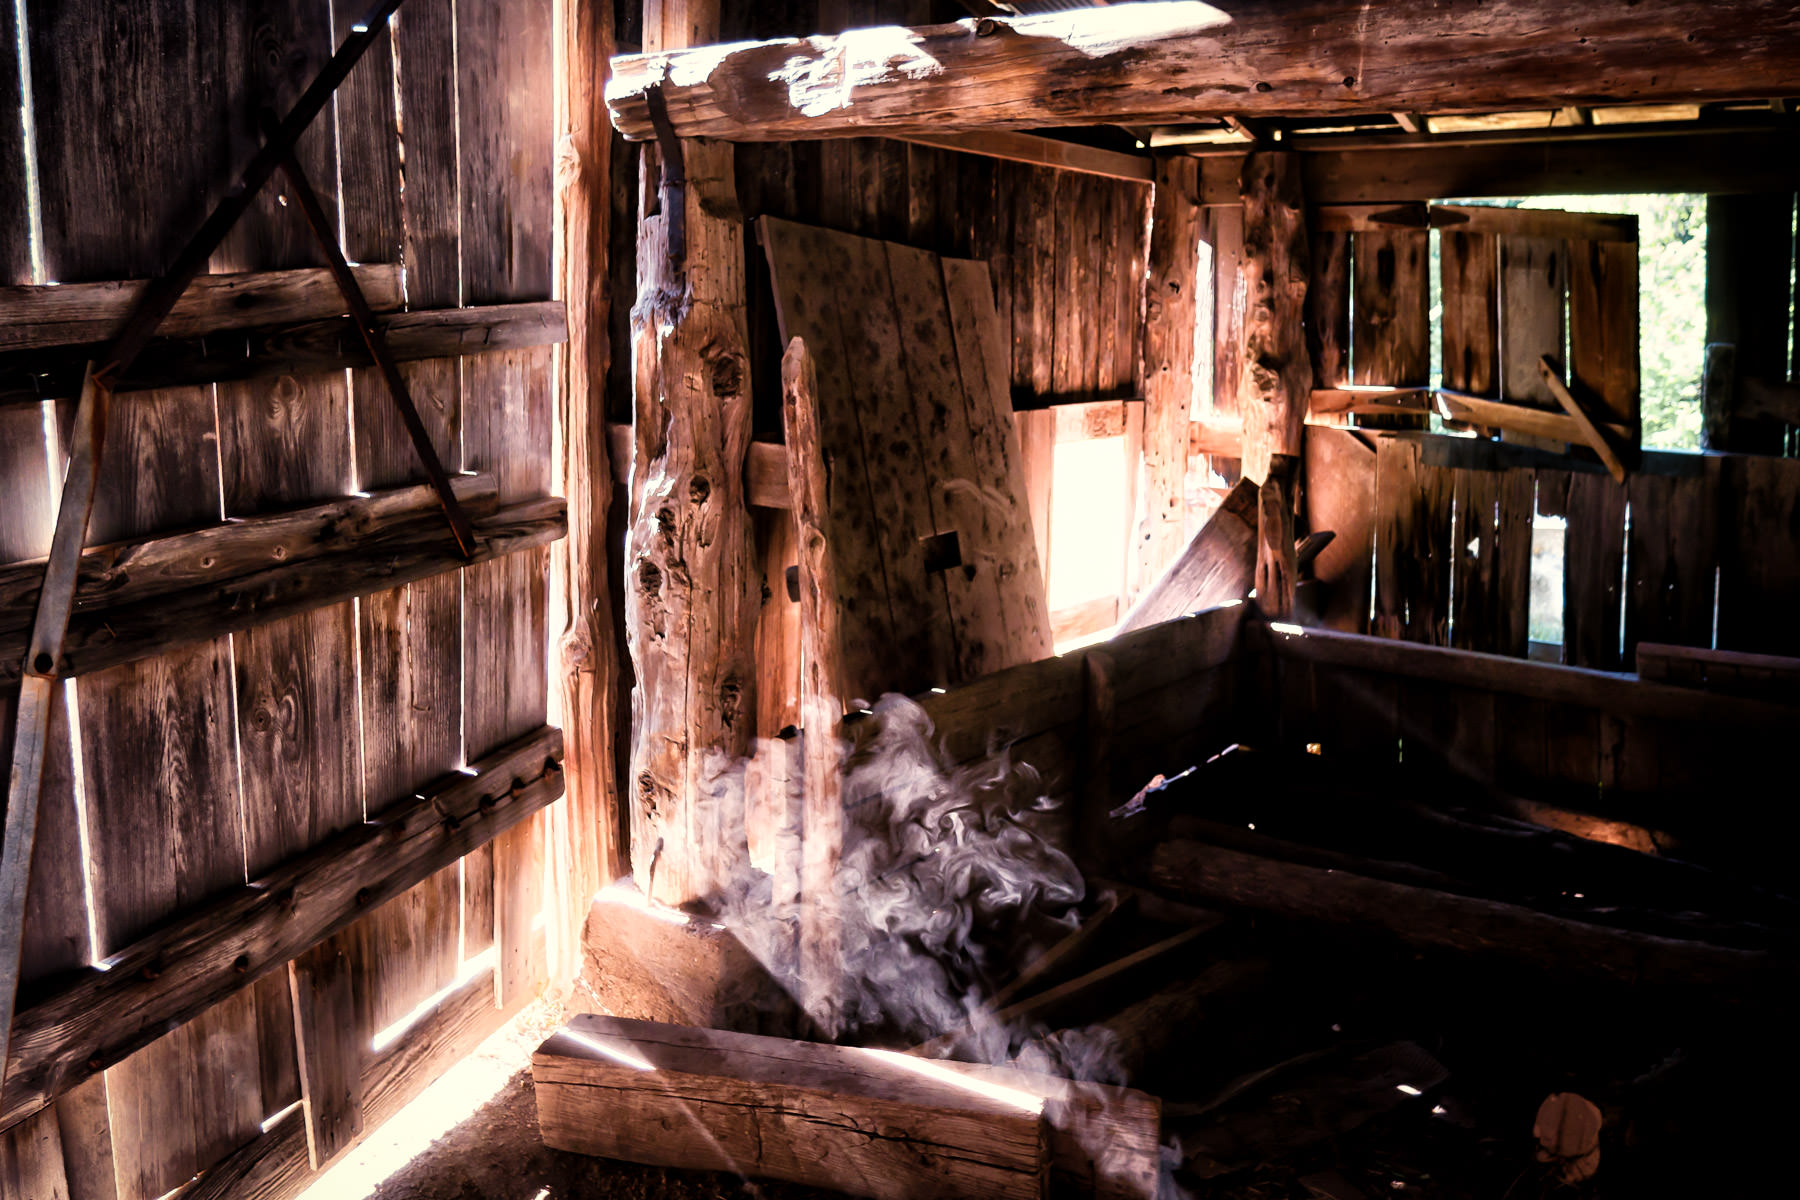 Sun spills through gaps in the wooden walls of a dilapidated barn at Penn Farm, Cedar Hill State Park, Texas.